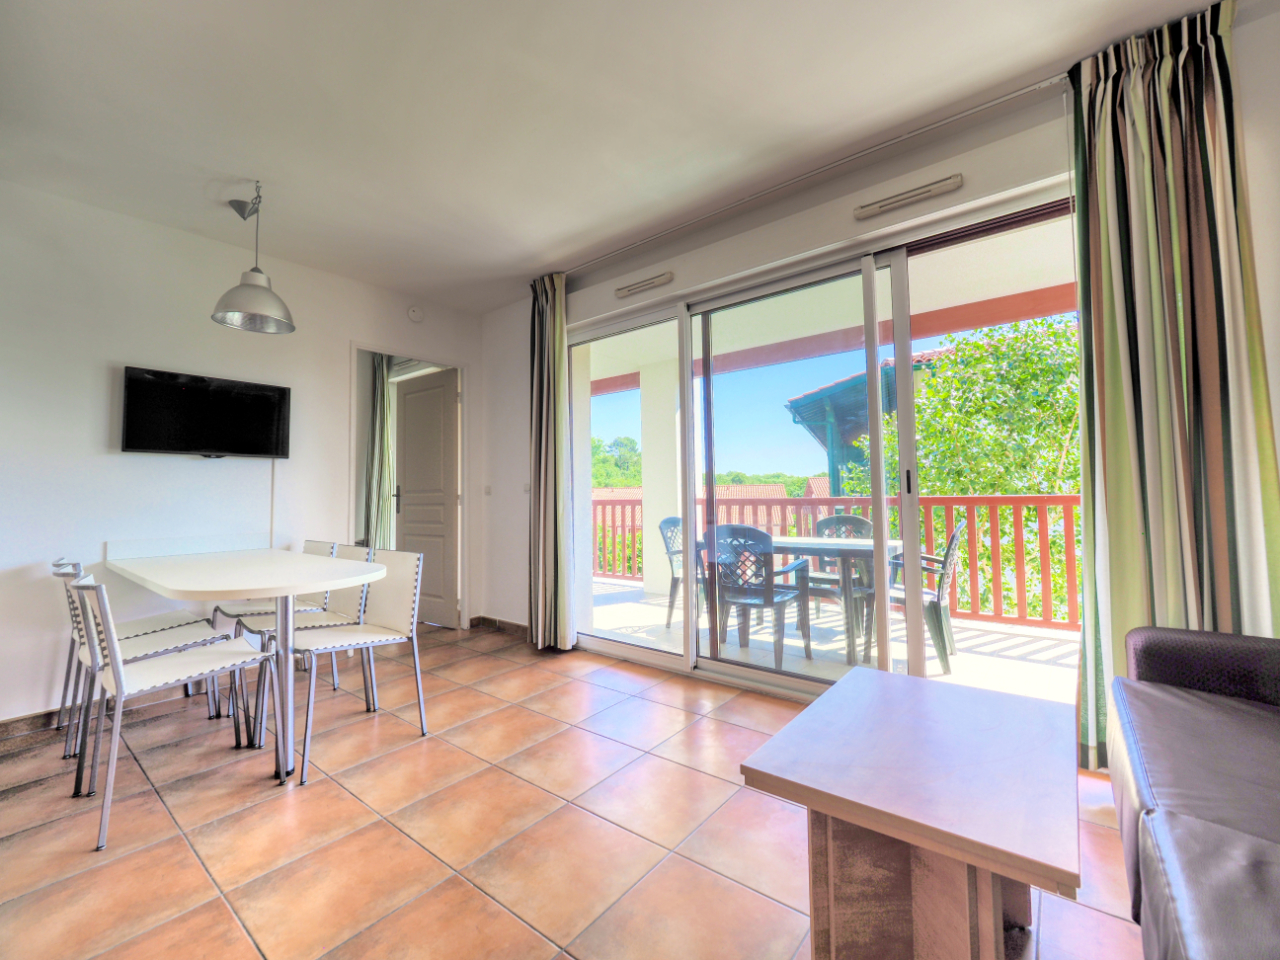 vente appartement à SAINT JEAN DE LUZ - 245 000